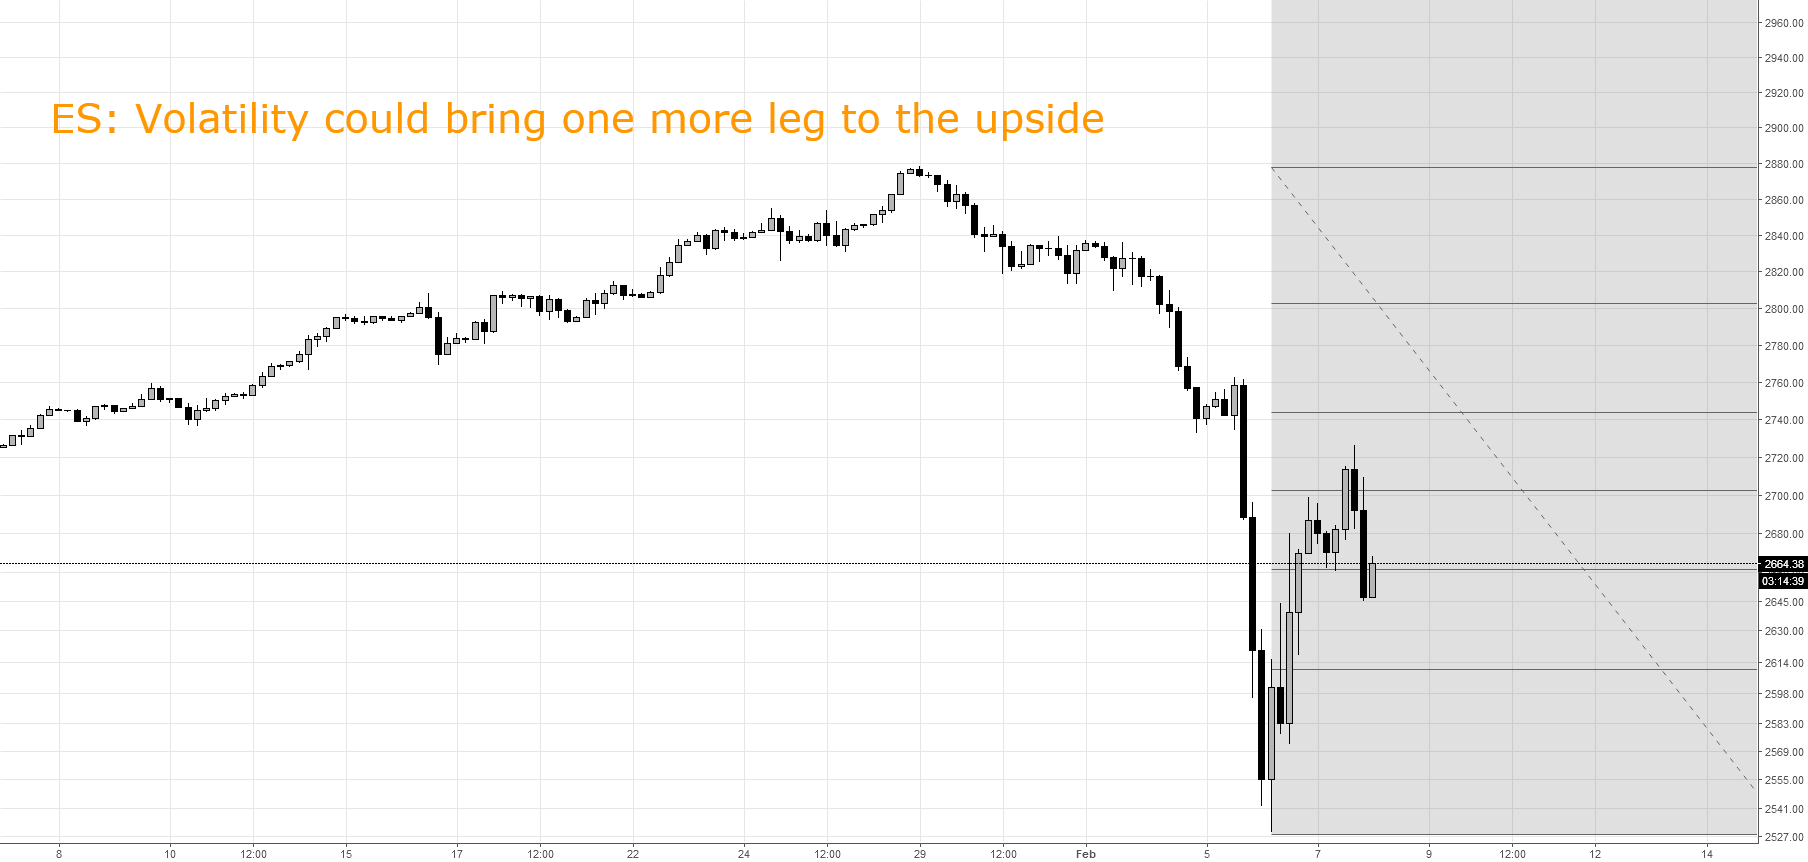 ES: up side momentum could accelerate